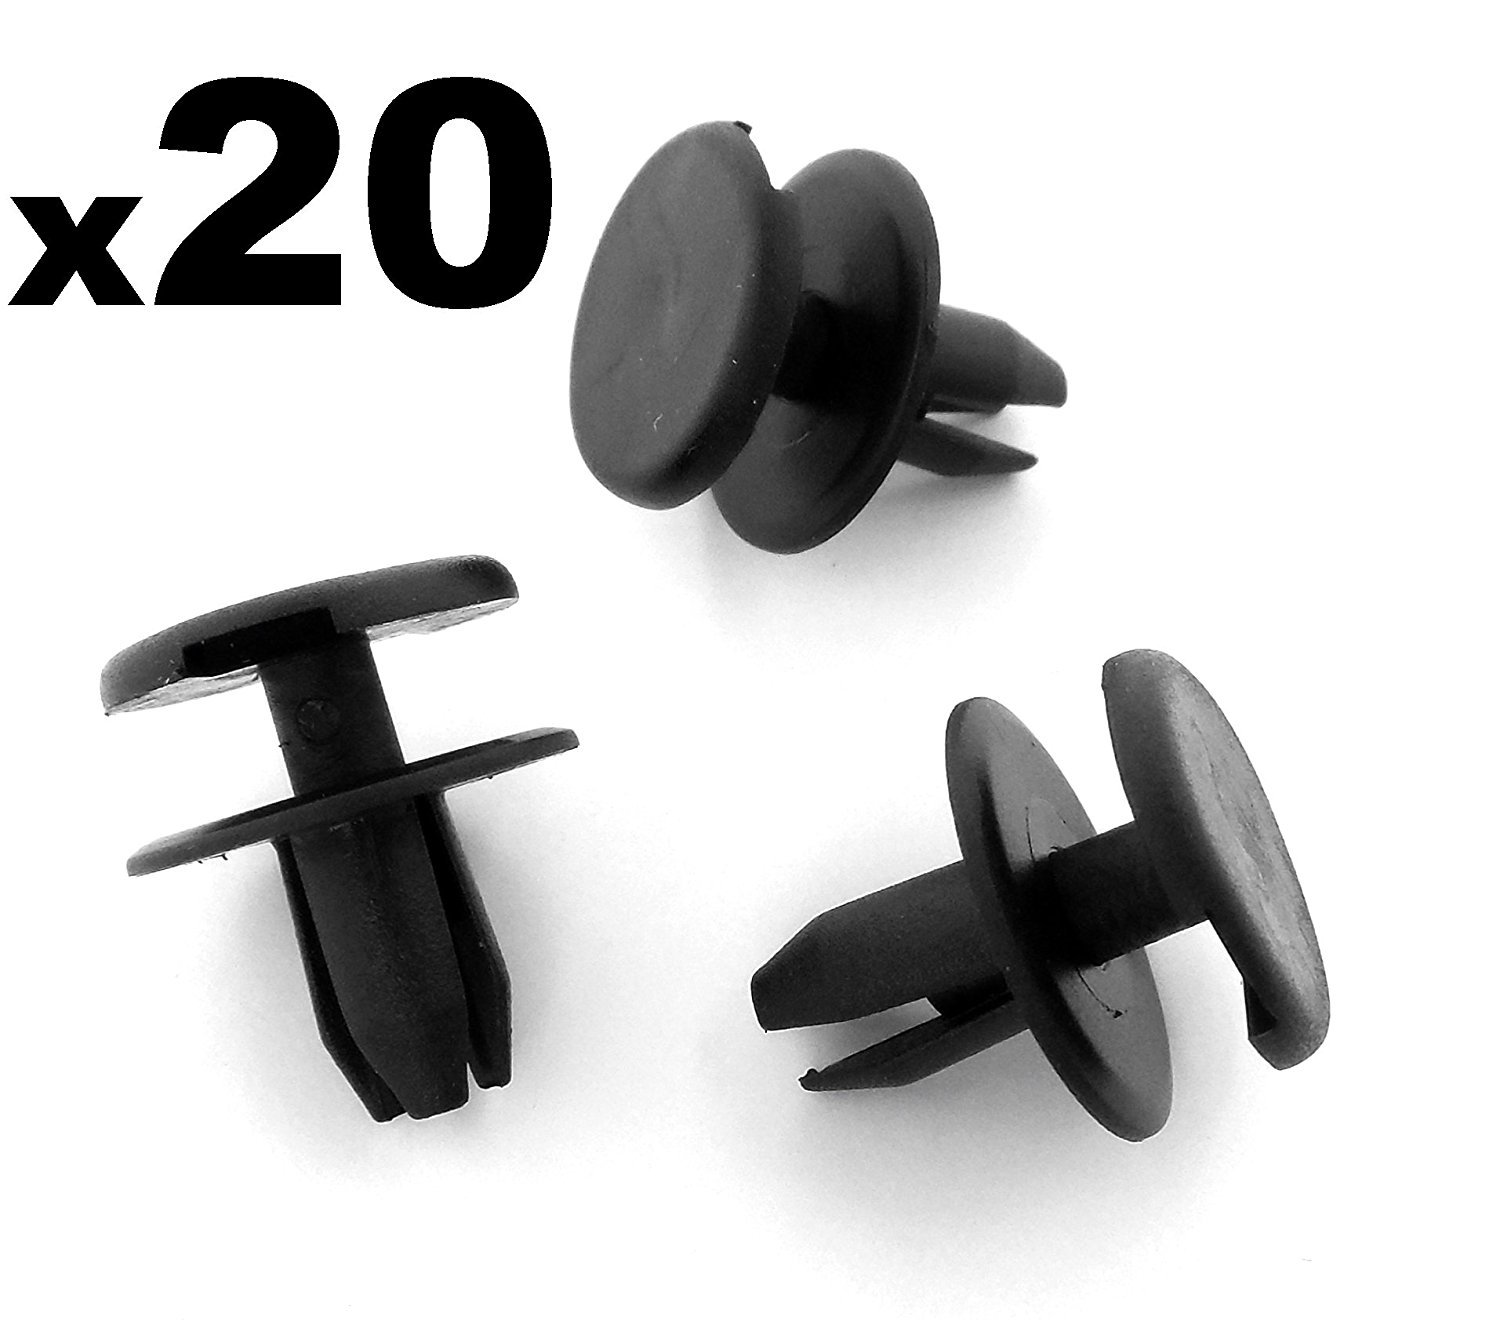 20x Front Bumper Clips / Plastic Rivets for Engine Trim Panels - FREE FIRST CLASS UK POSTAGE! Auto Trim Clips